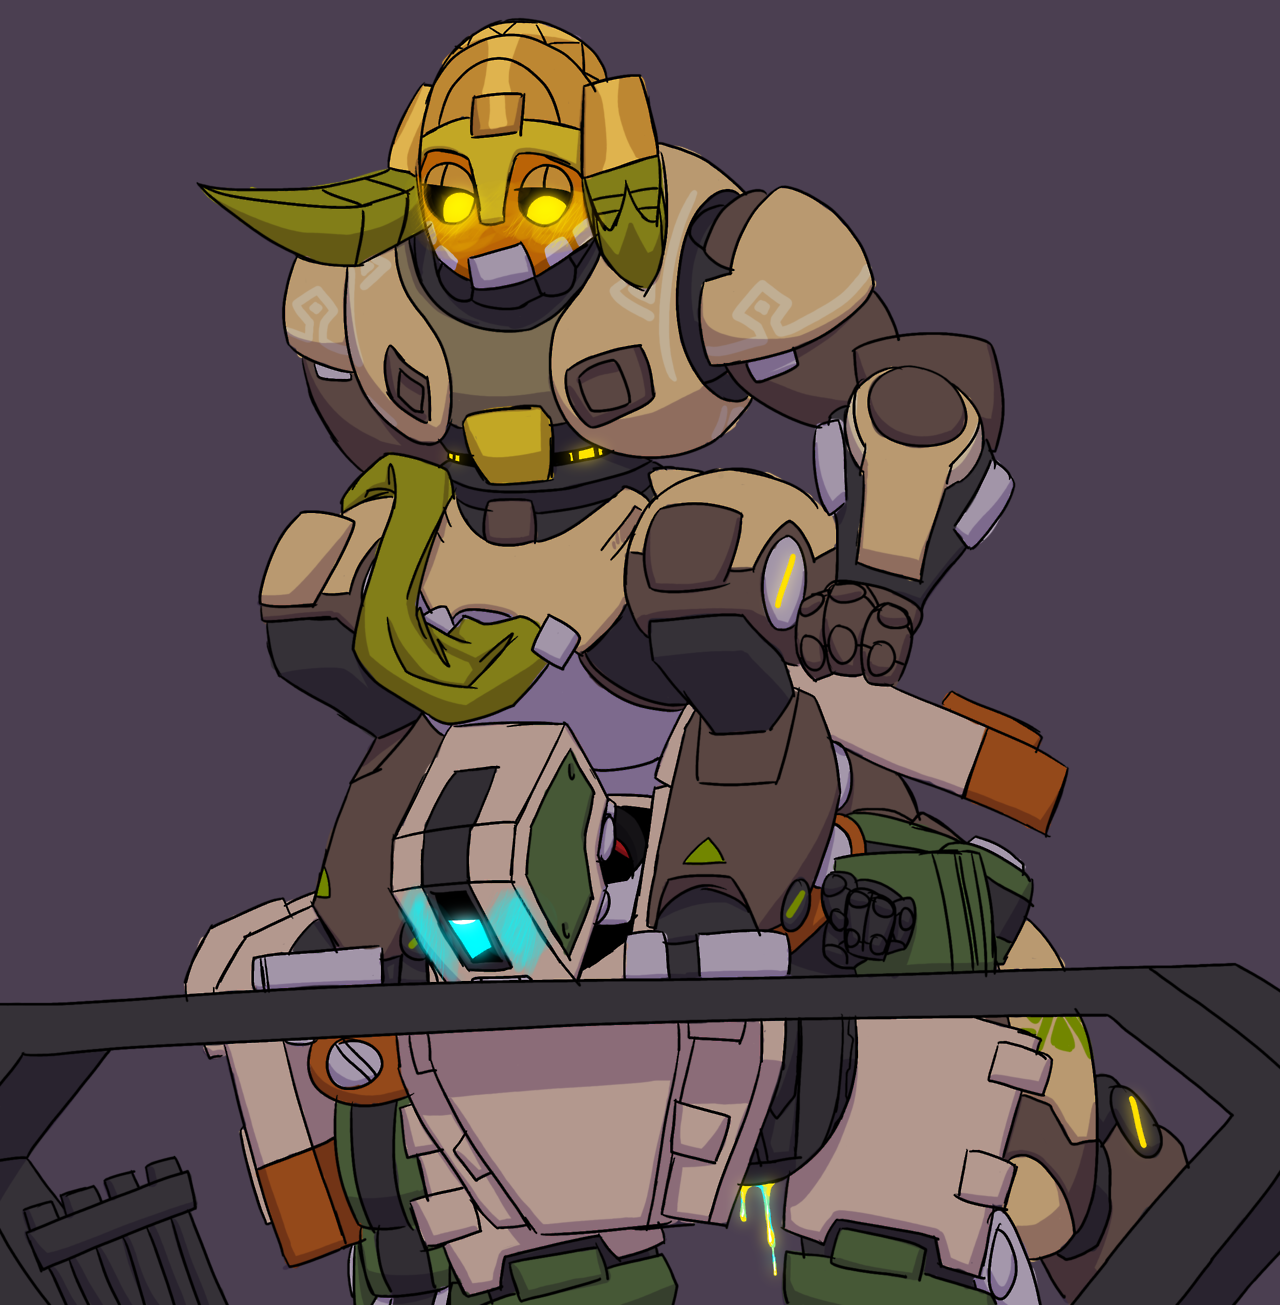 2346948 - Bastion Orisa Overlook